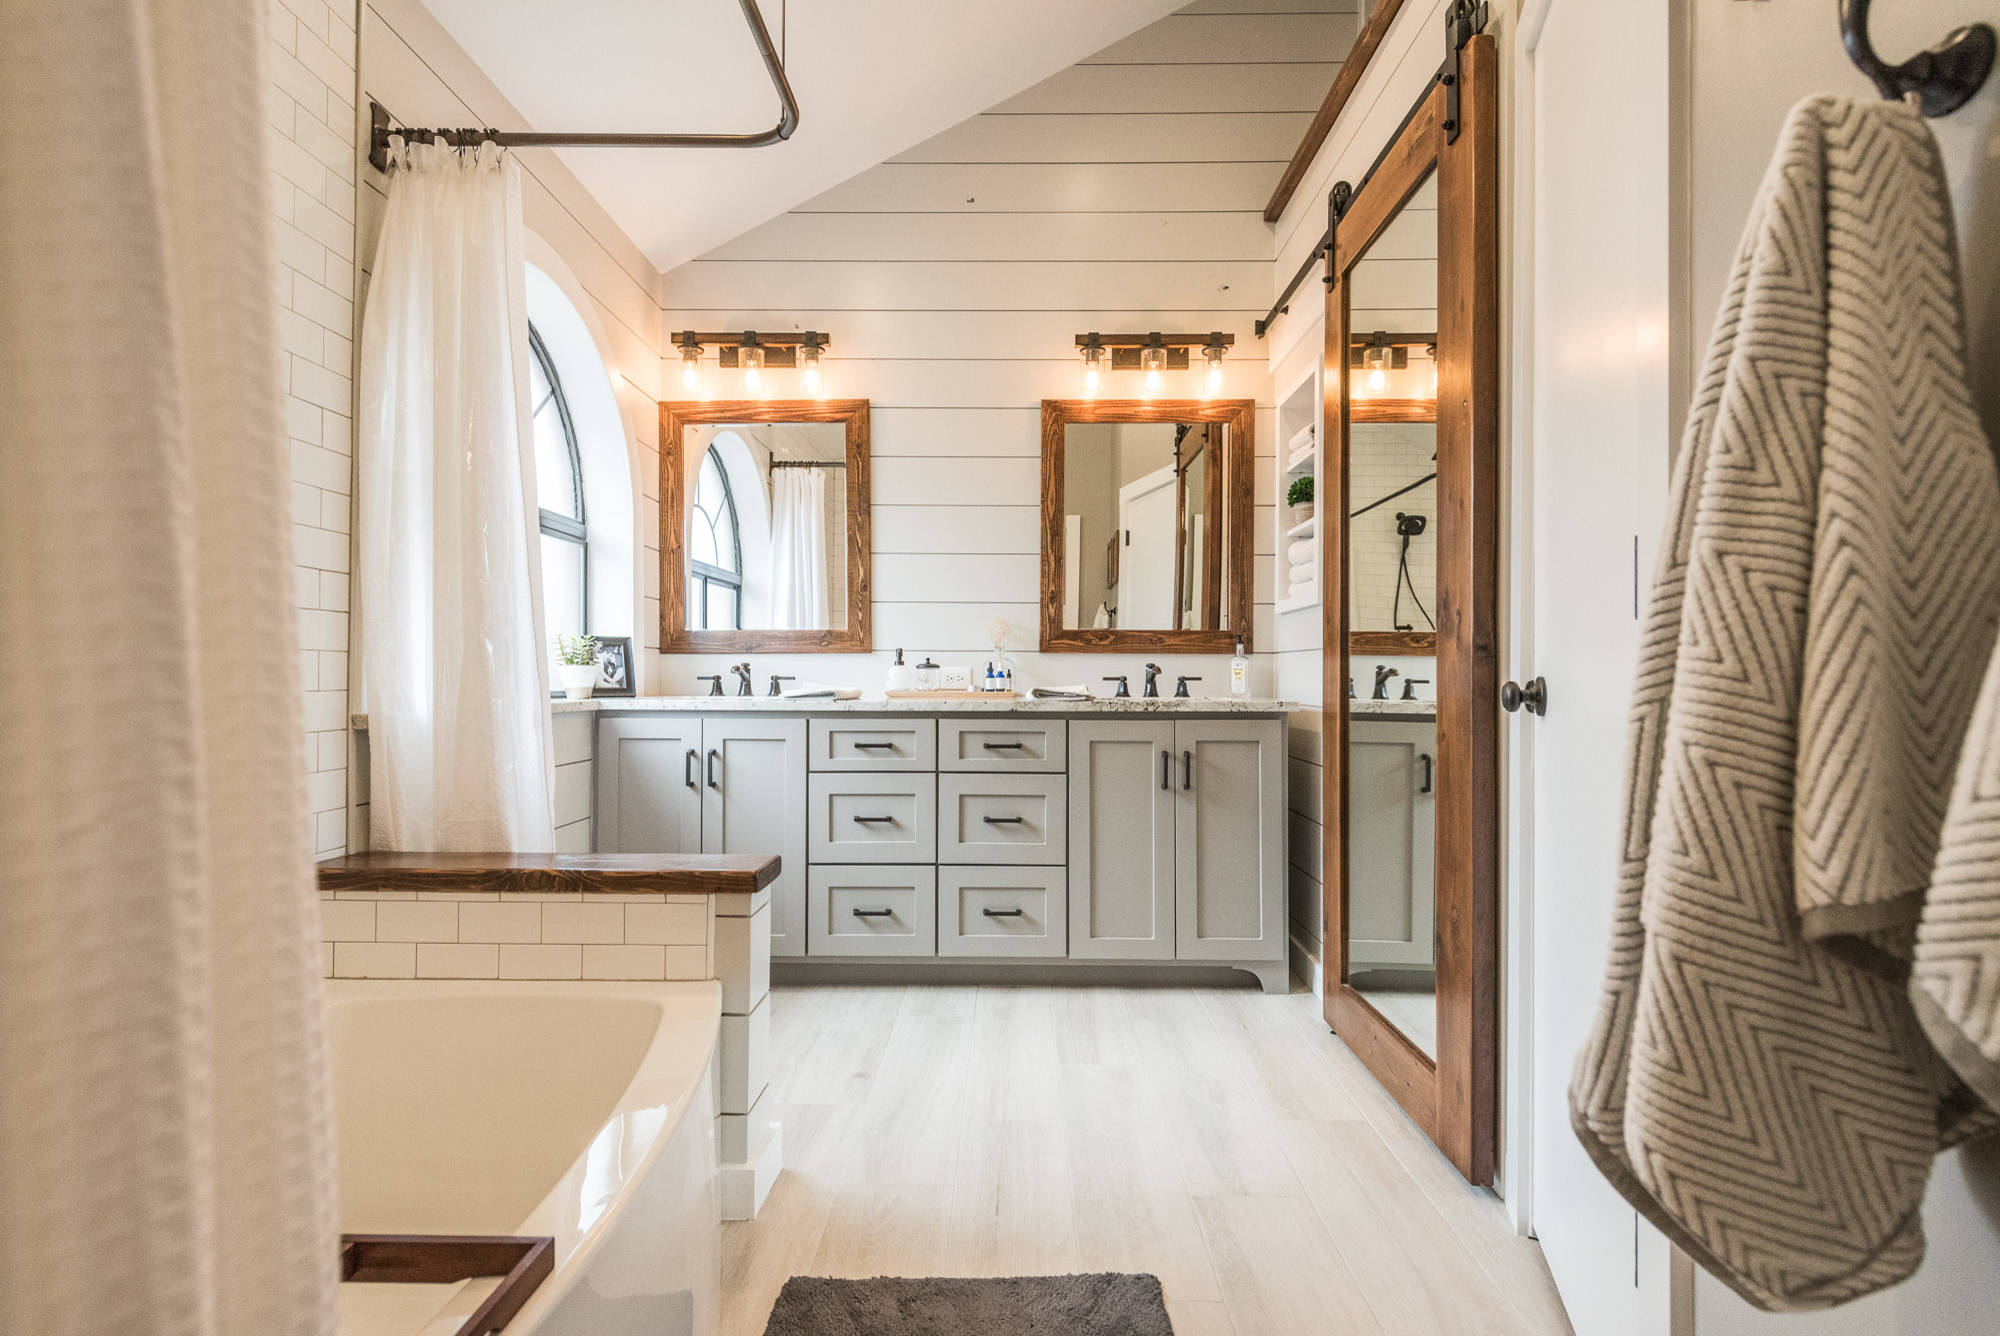 75 Beautiful Shower Curtain Pictures Ideas February 2021 Houzz